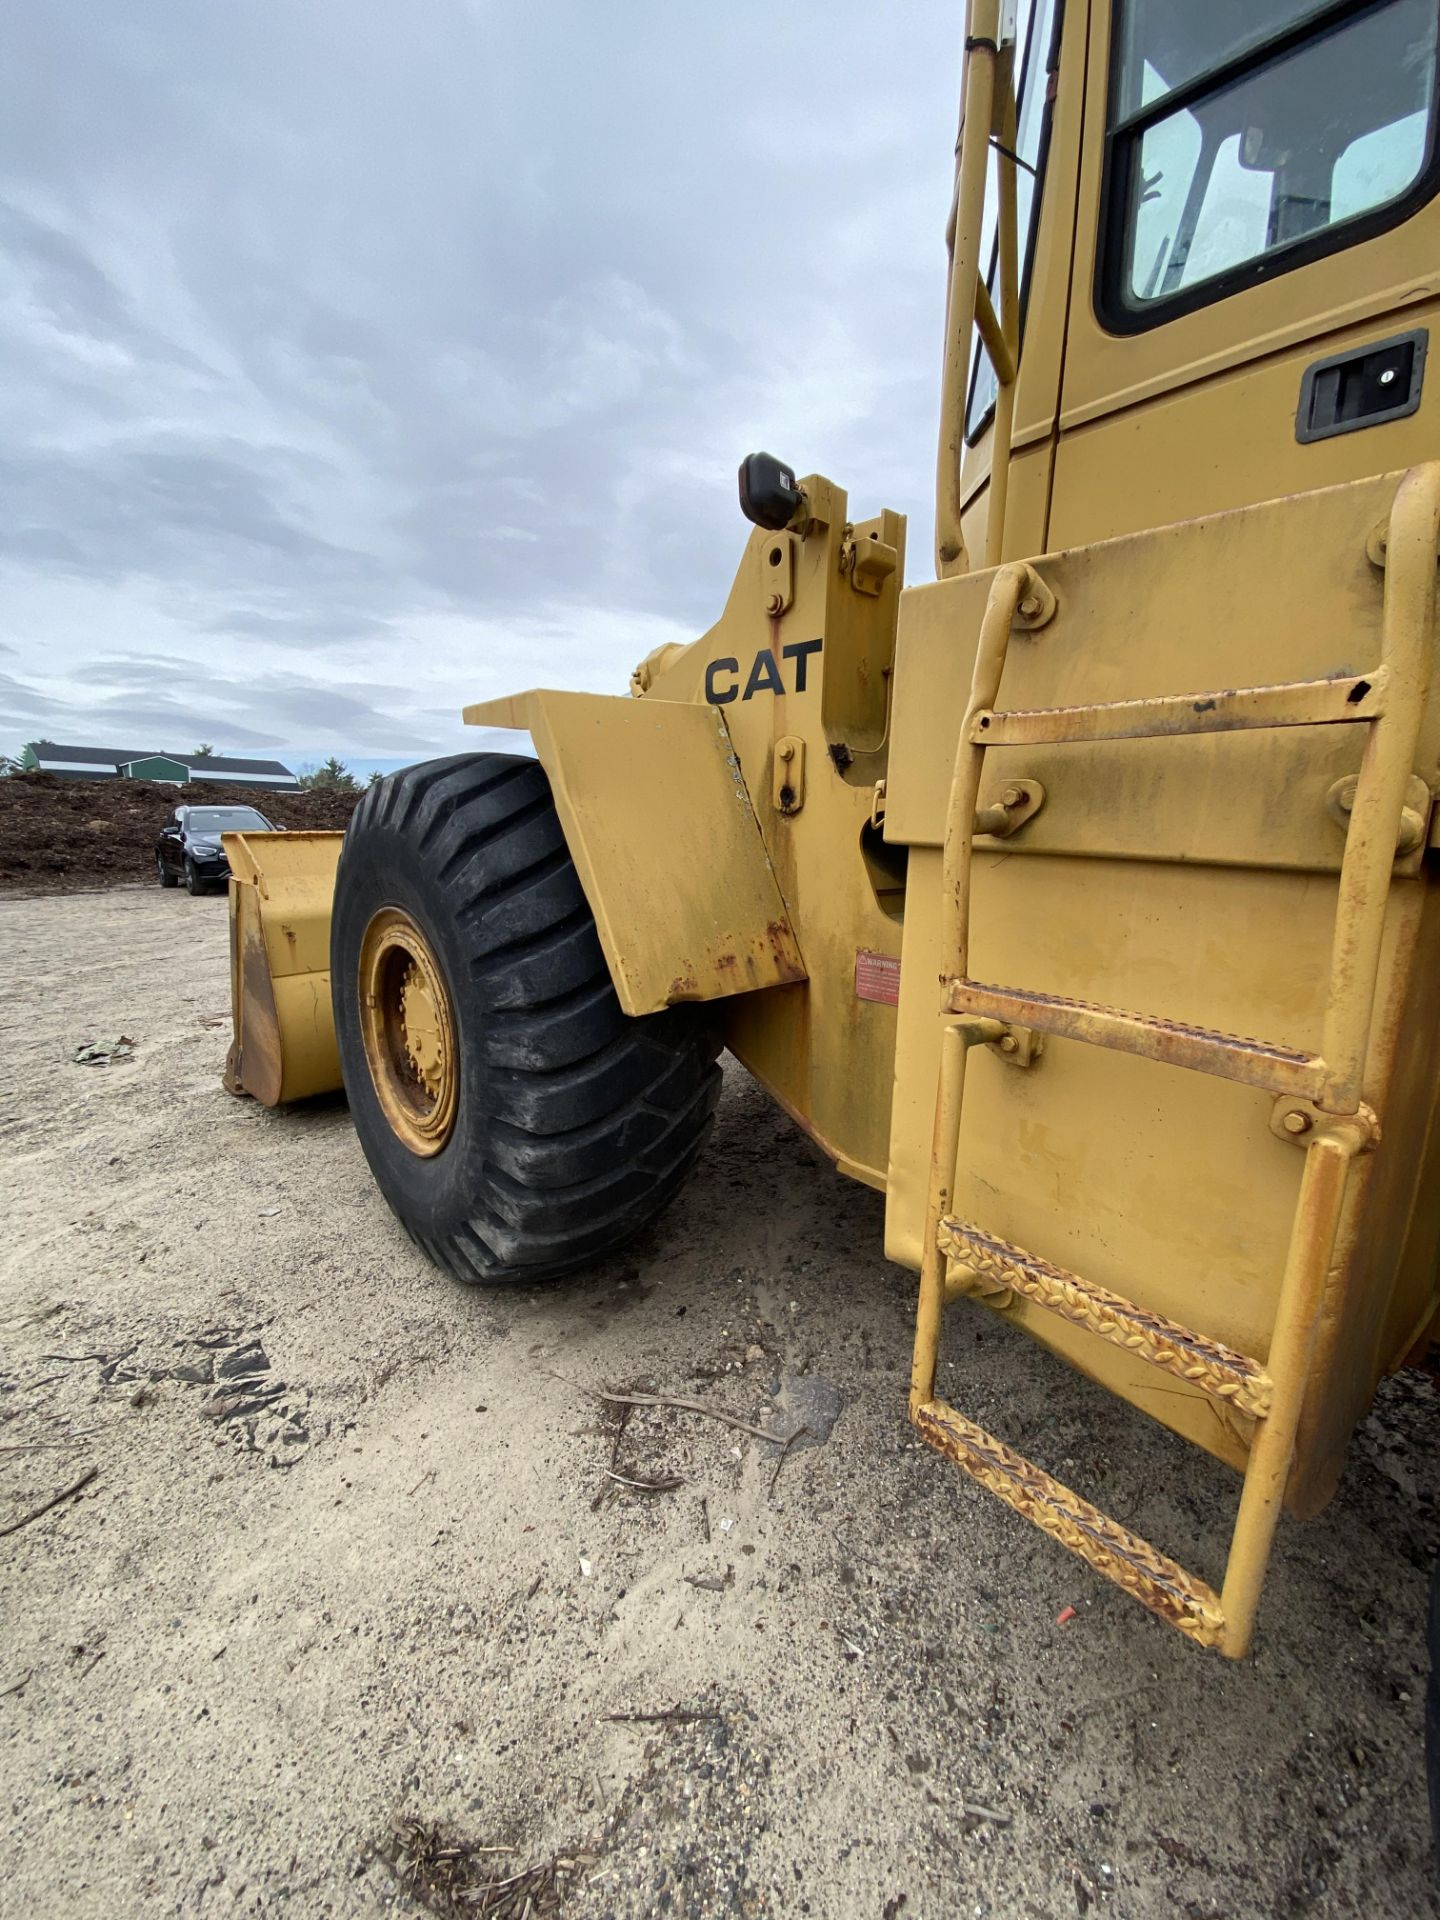 1980 Caterpillar 966D Wheel Loader s/n 99Y02108, Meter Reads 4,664 Hours, Have Title - Image 7 of 23